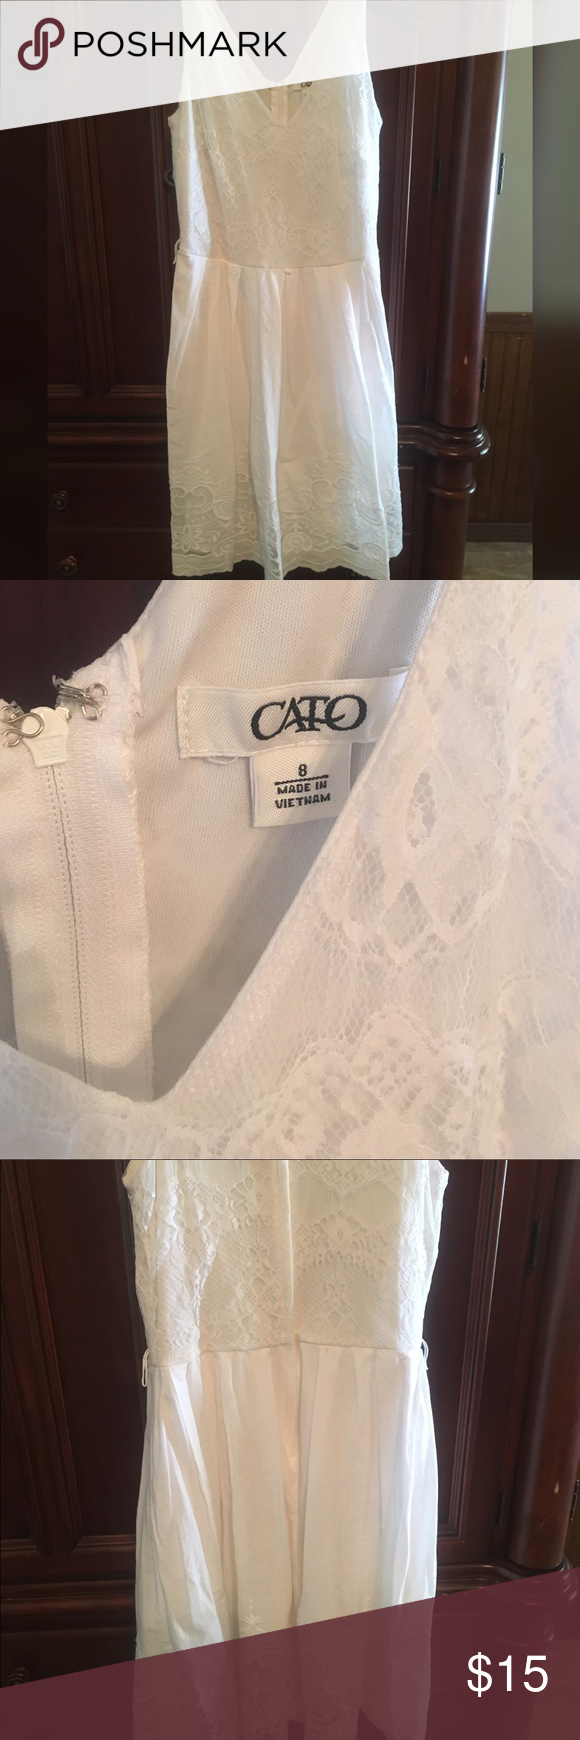 CATO White Lace Dress CATO White Lace Dress, true size 8, great condition, beautiful detail and light weight material. Smoke/Pet Free Home. Cato Dresses Midi